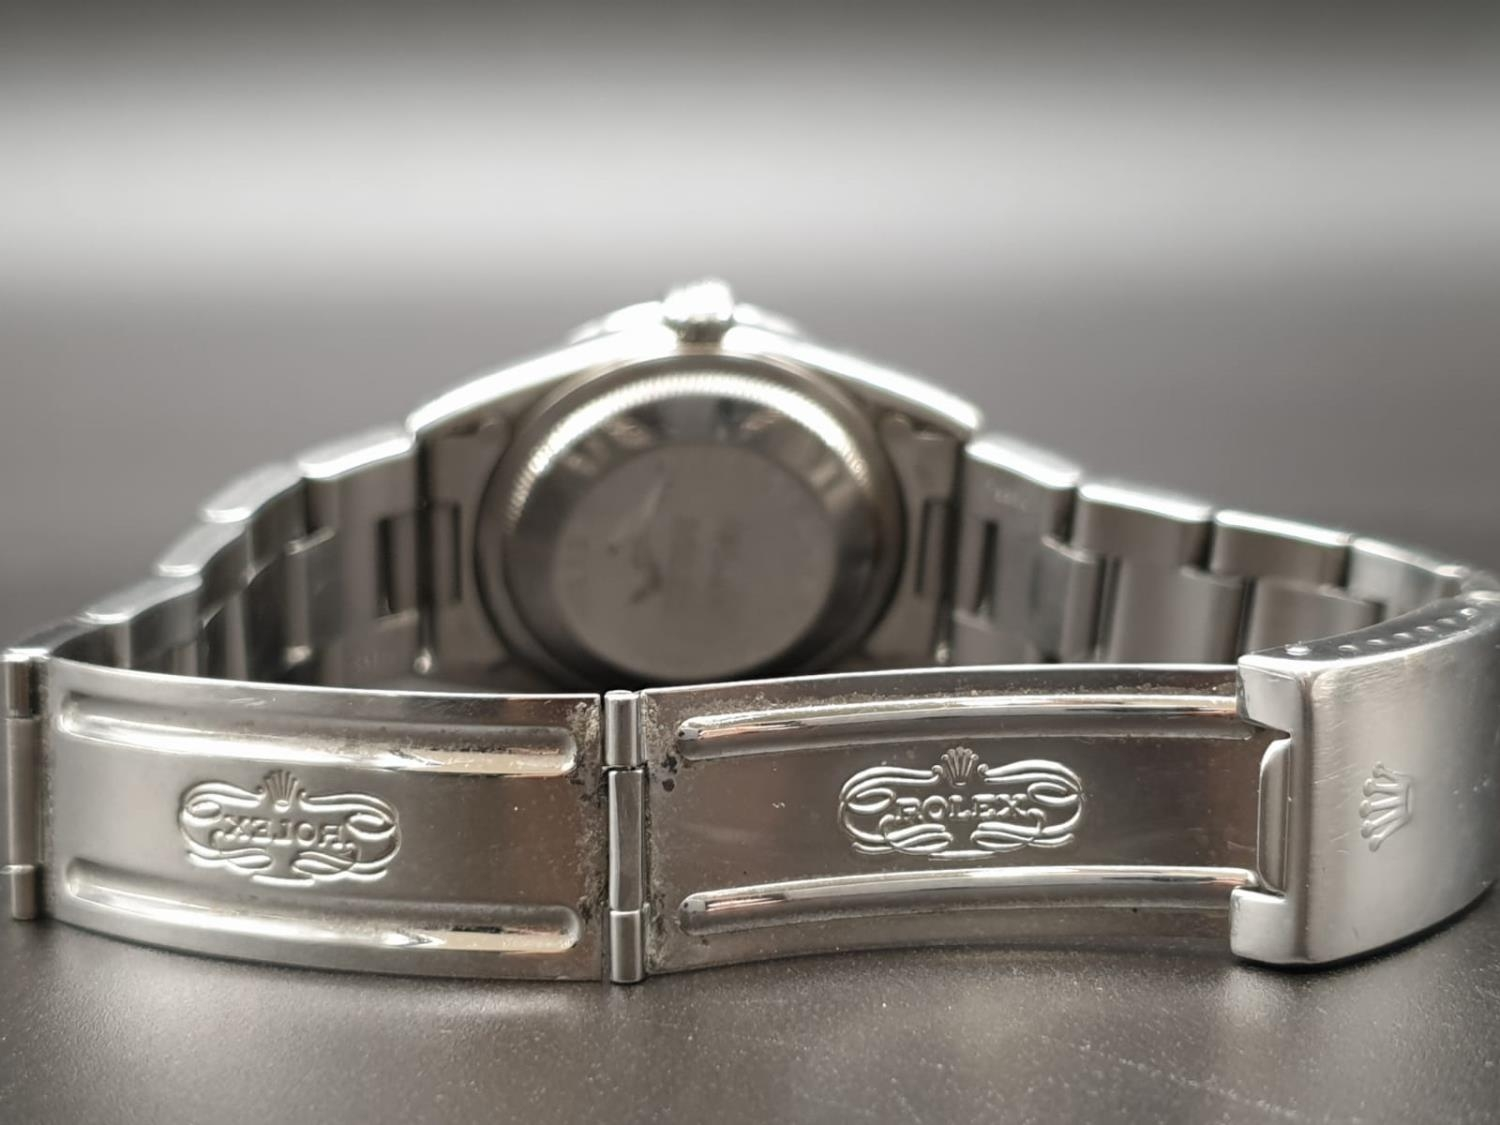 ROLEX OYSTER DATEJUST IN STAINLESS STEEL WITH ATTRACTIVE LIGHT OYSTER FACE, FWO 36MM - Image 7 of 10